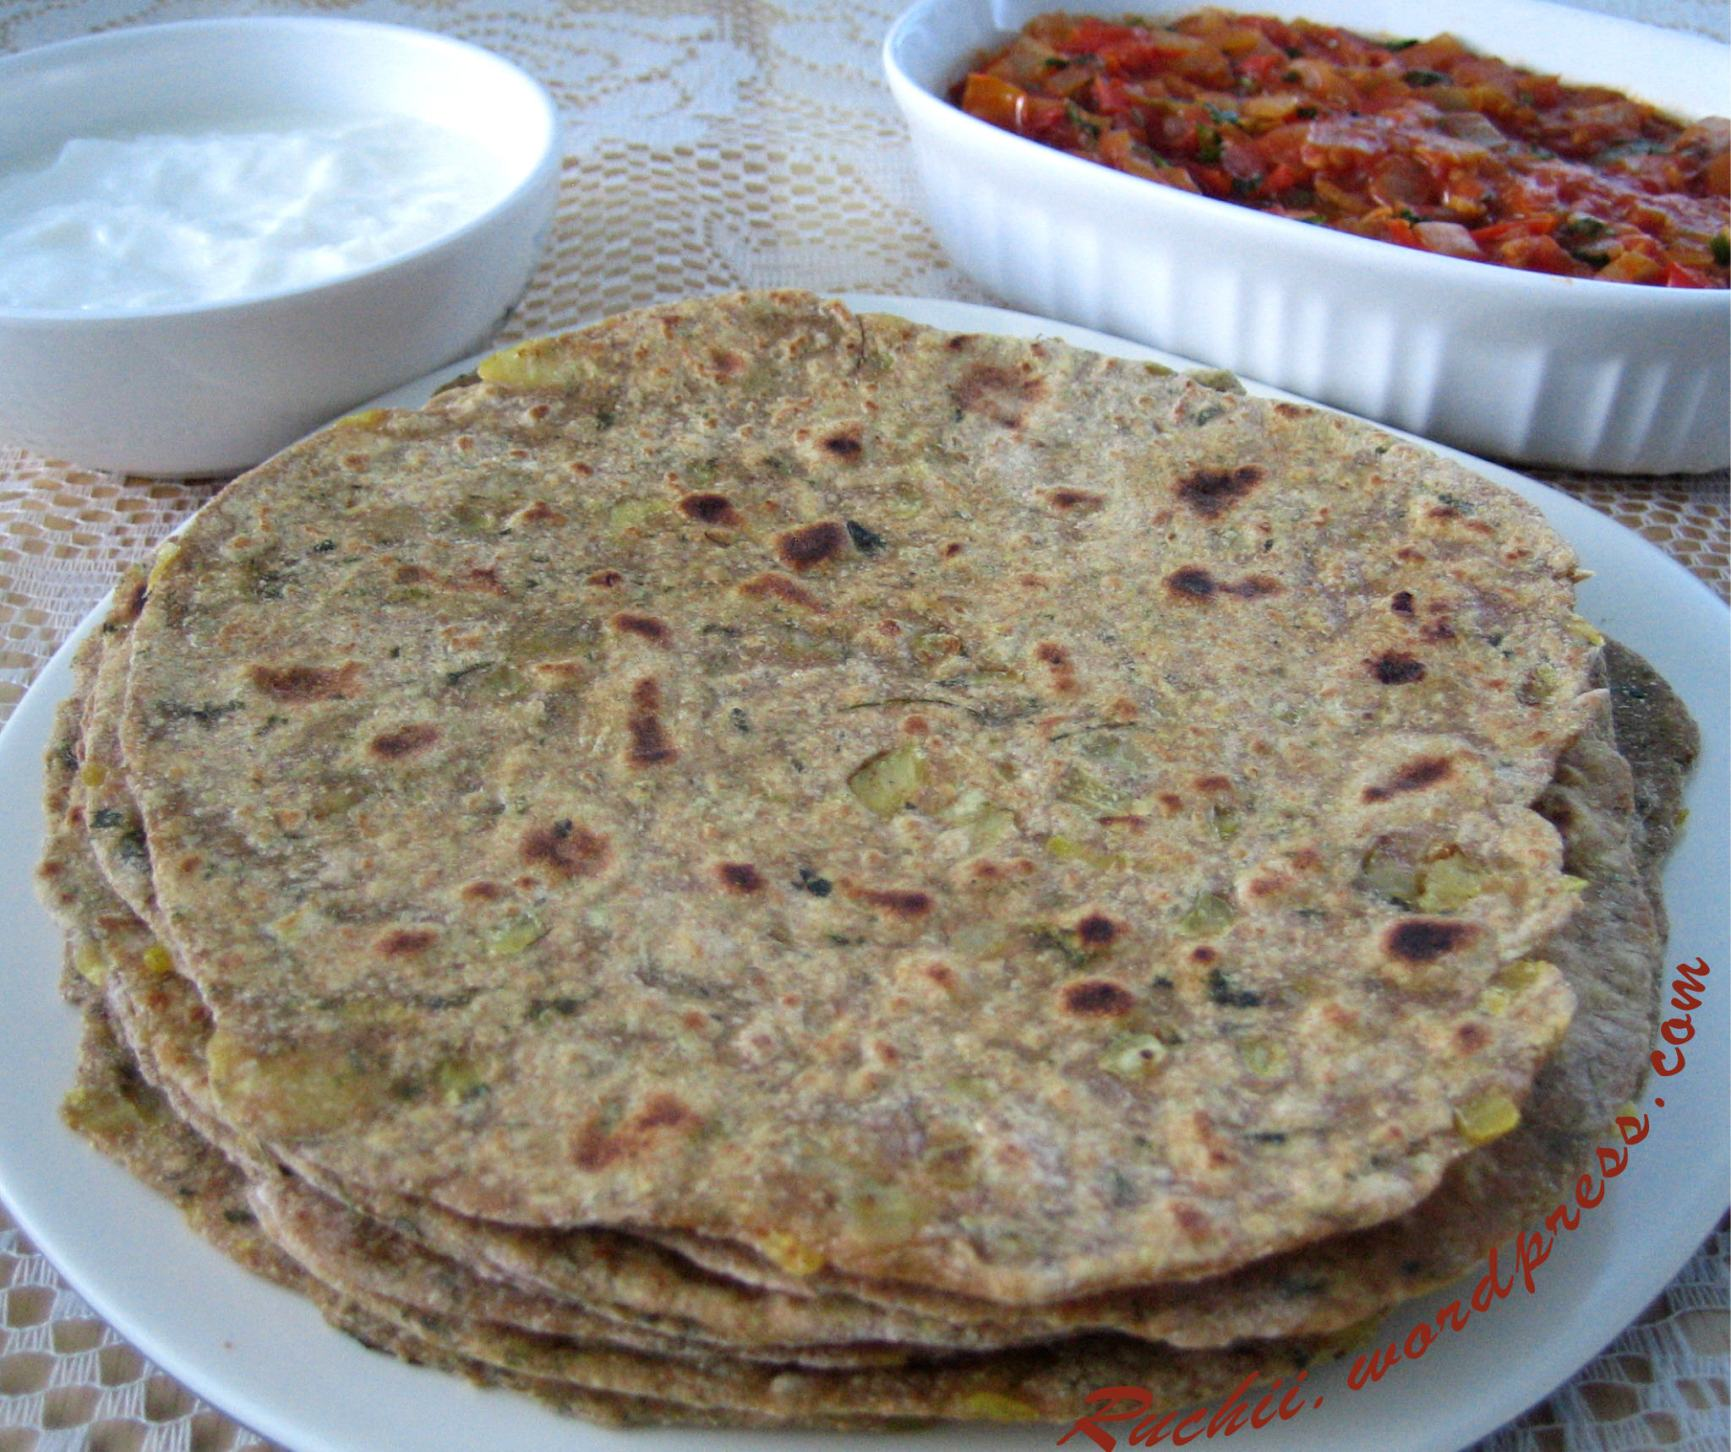 methi-onion.jpg